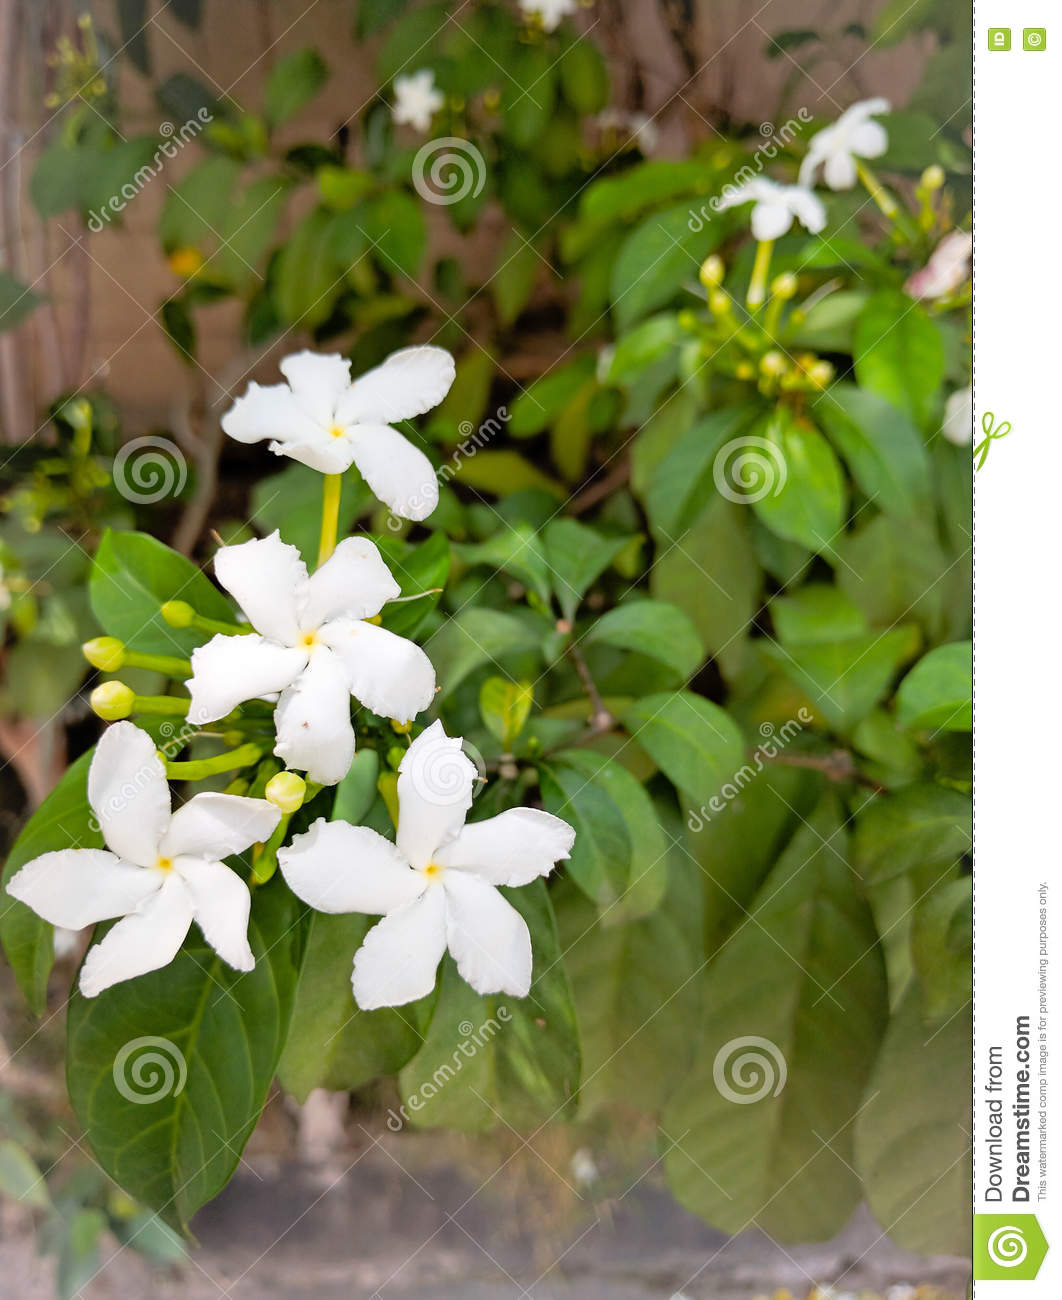 White Flowers Stock Photo Image Of Background Leaves 77780394